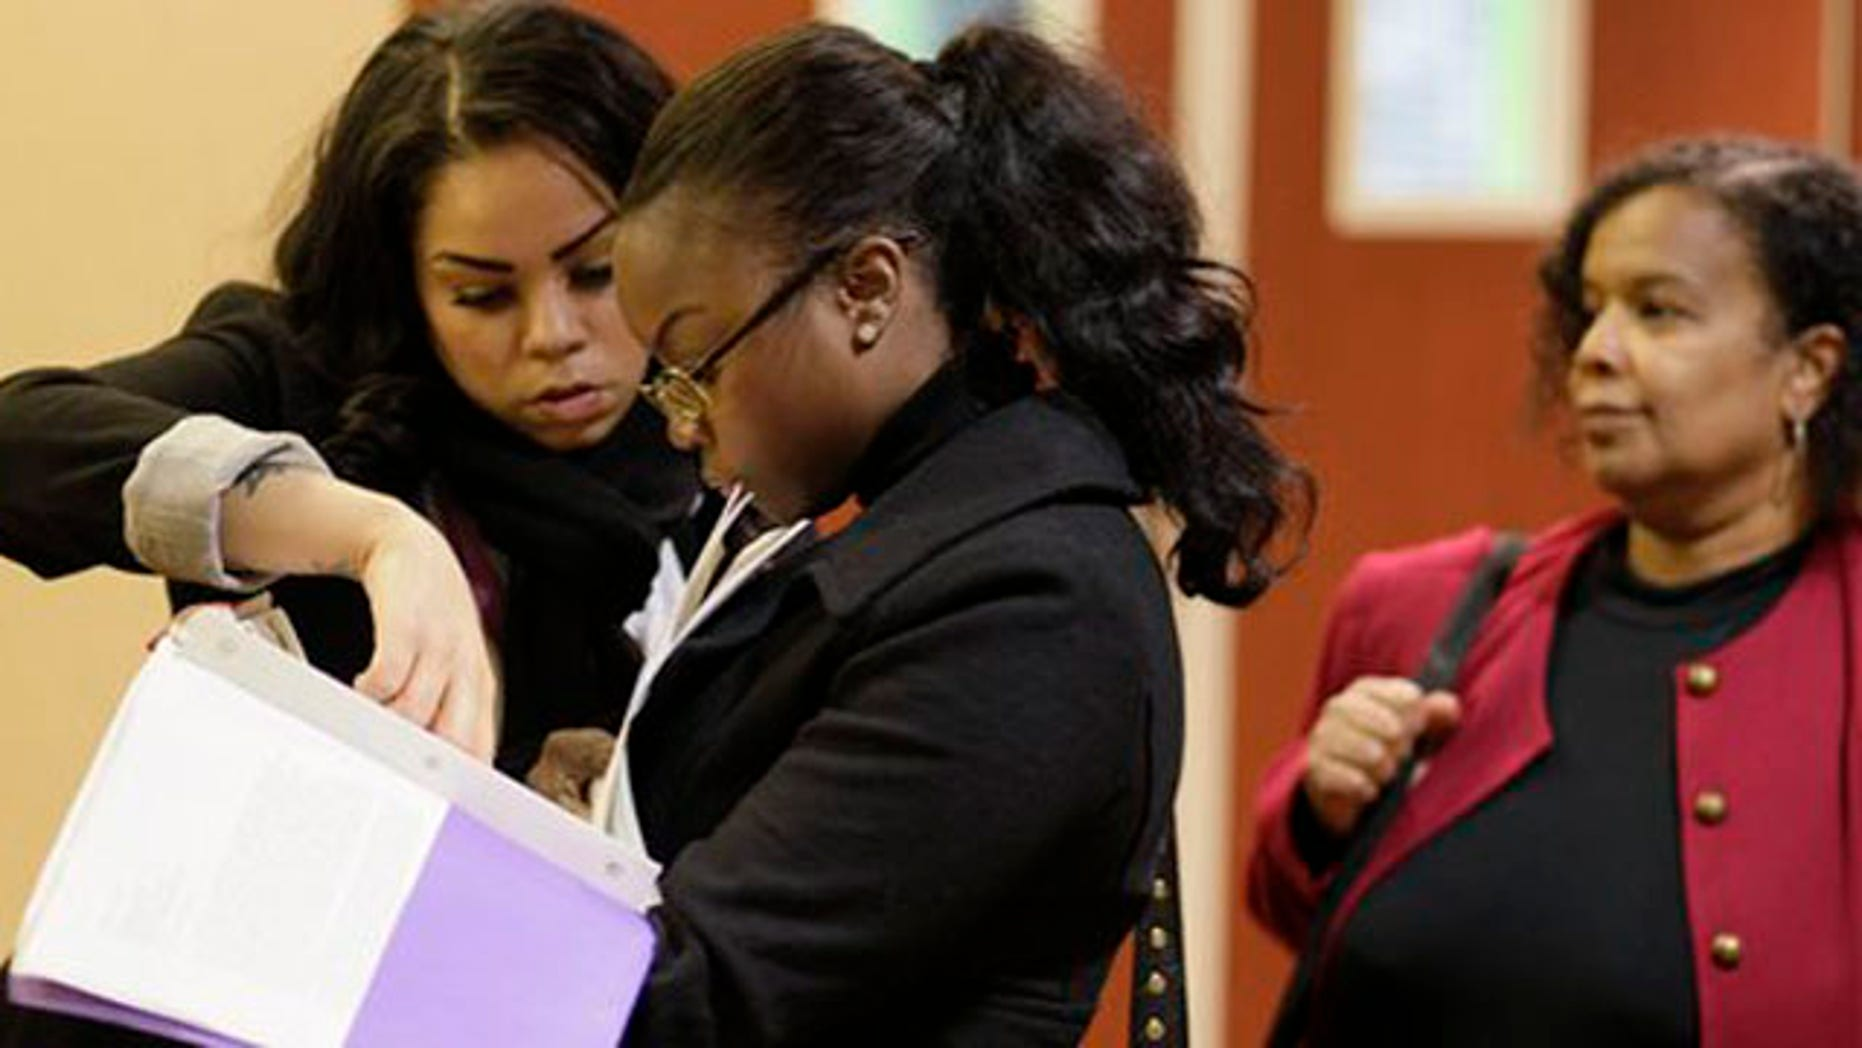 Jan. 28, 2012: Job seekers Cameo Taylor, left, and Angelique McGuire, center, both of San Francisco, wait in line to register at a Career Fair event in San Francisco.